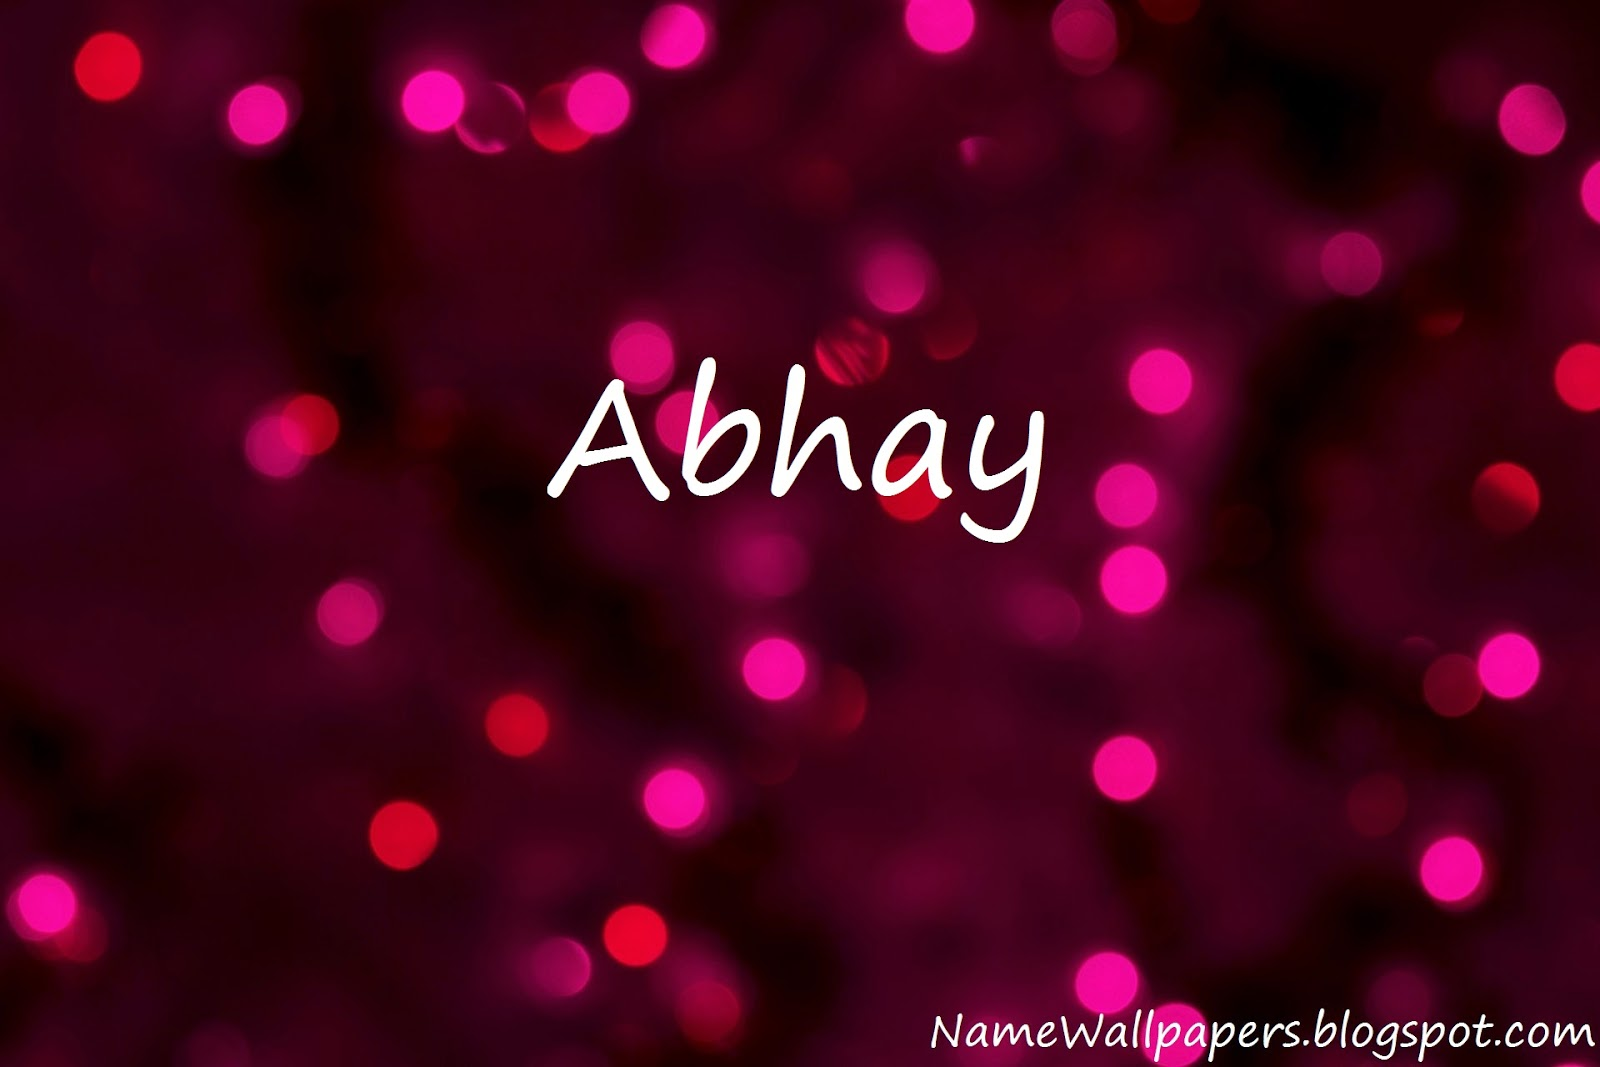 New Wallpaper For Iphone 5s Download Abhay Name Wallpaper Gallery